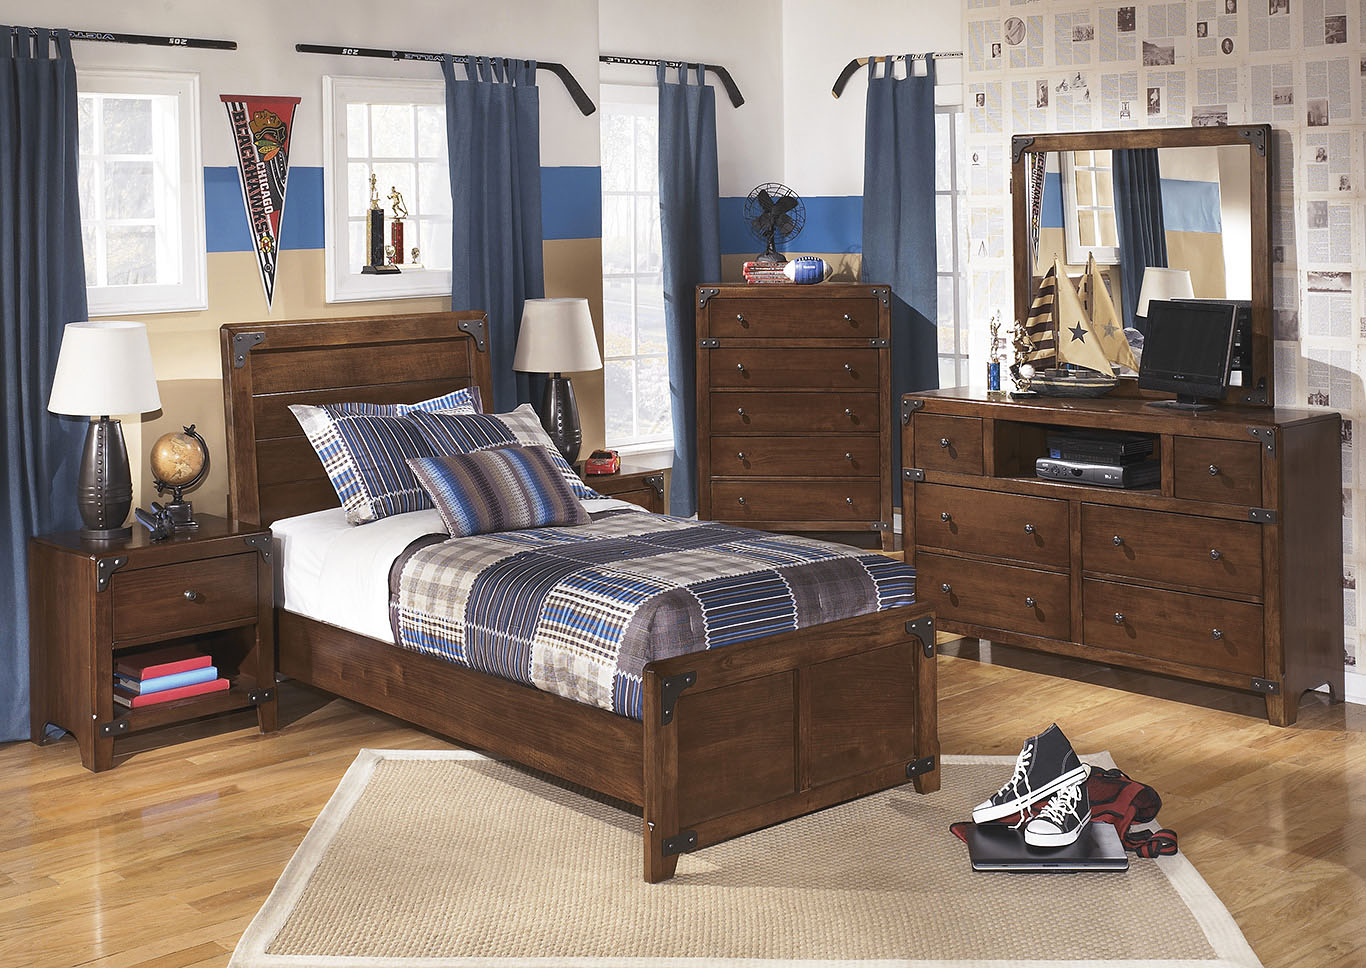 Delburne Full Panel Bed w/Dresser, Mirror & Chest,Signature Design By Ashley